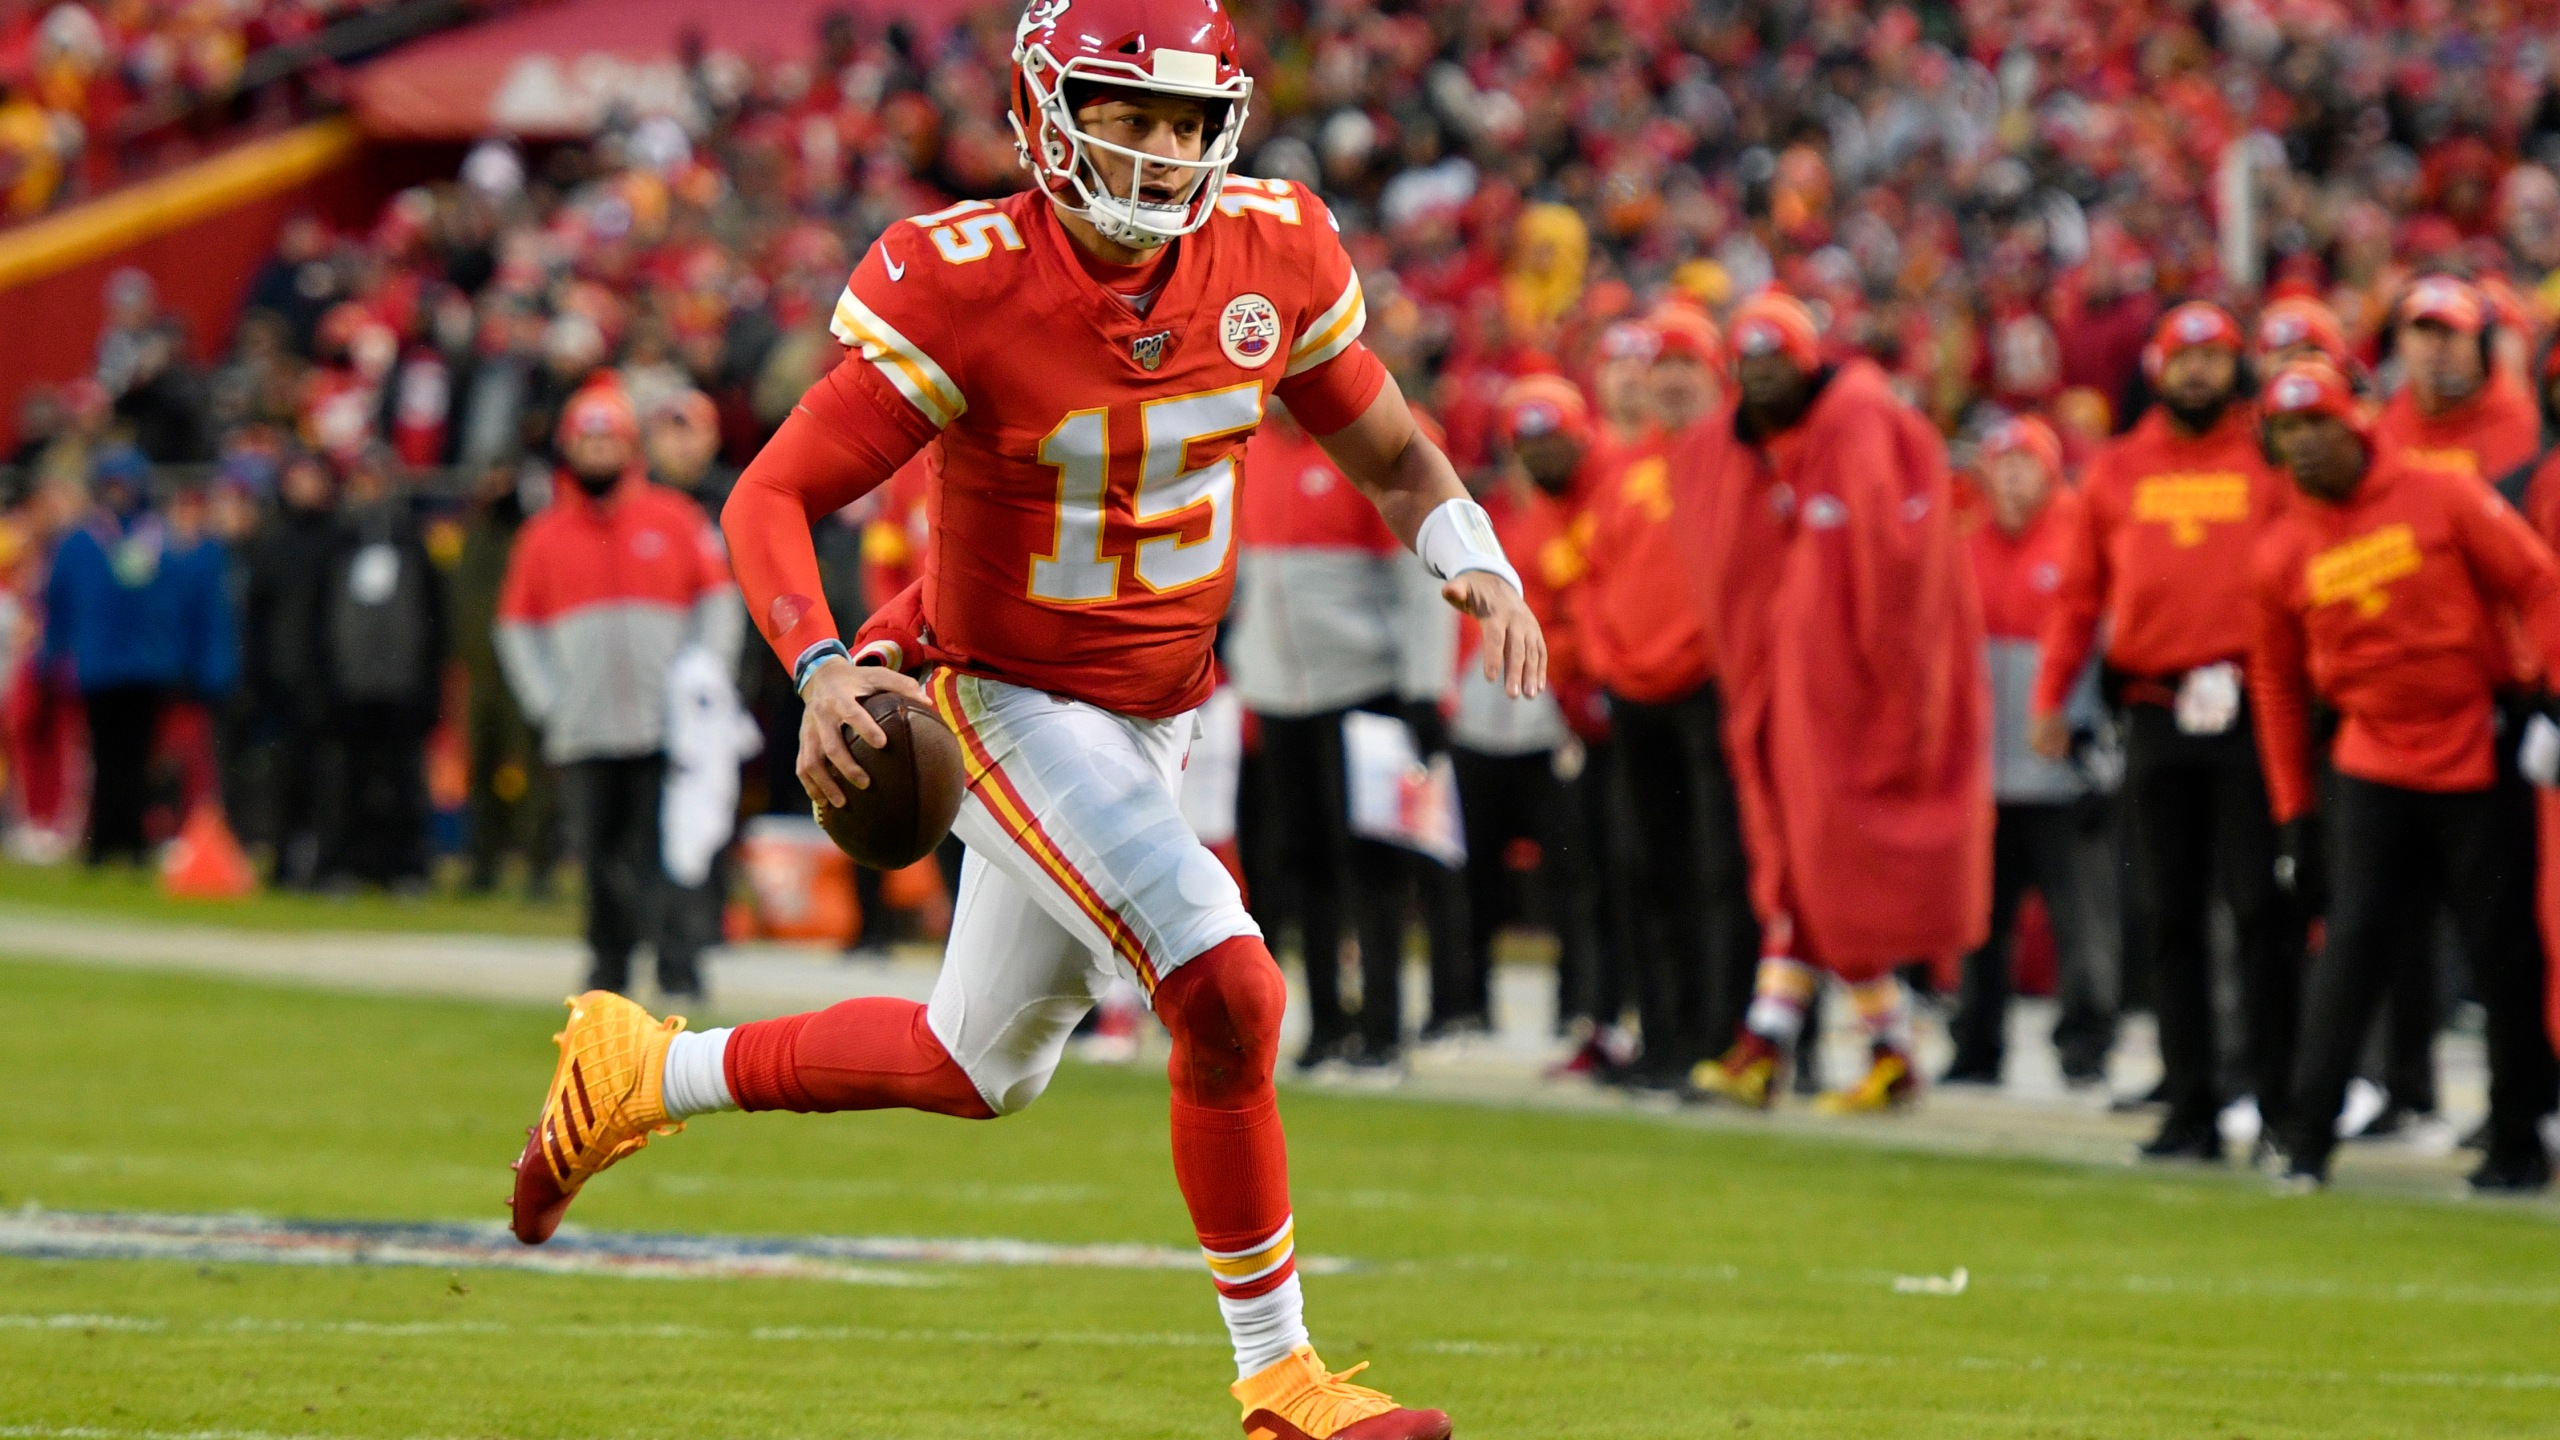 no sale tax best price sneakers Chiefs rout Raiders 40-9 to seize AFC West control – CBS17.com